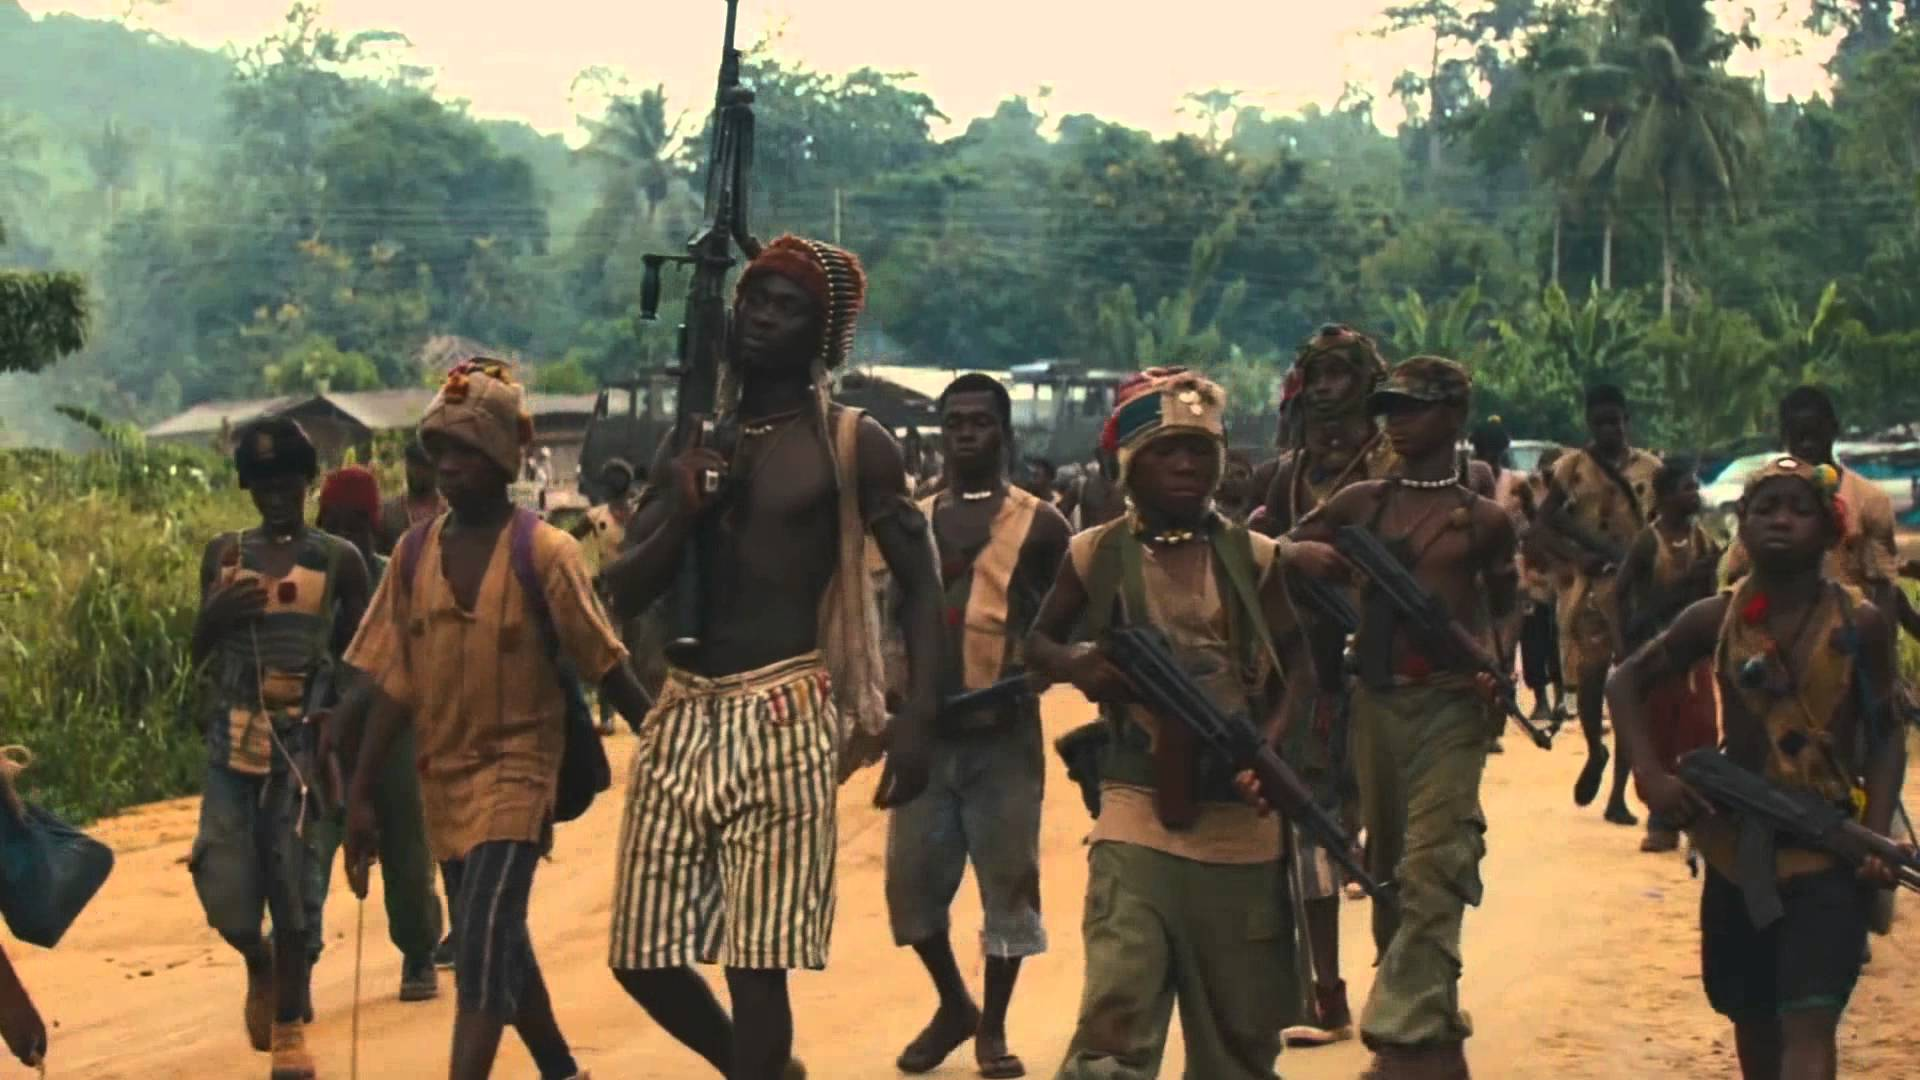 Top 5 Greatest War Films of the 2010s - Beasts of No Nation